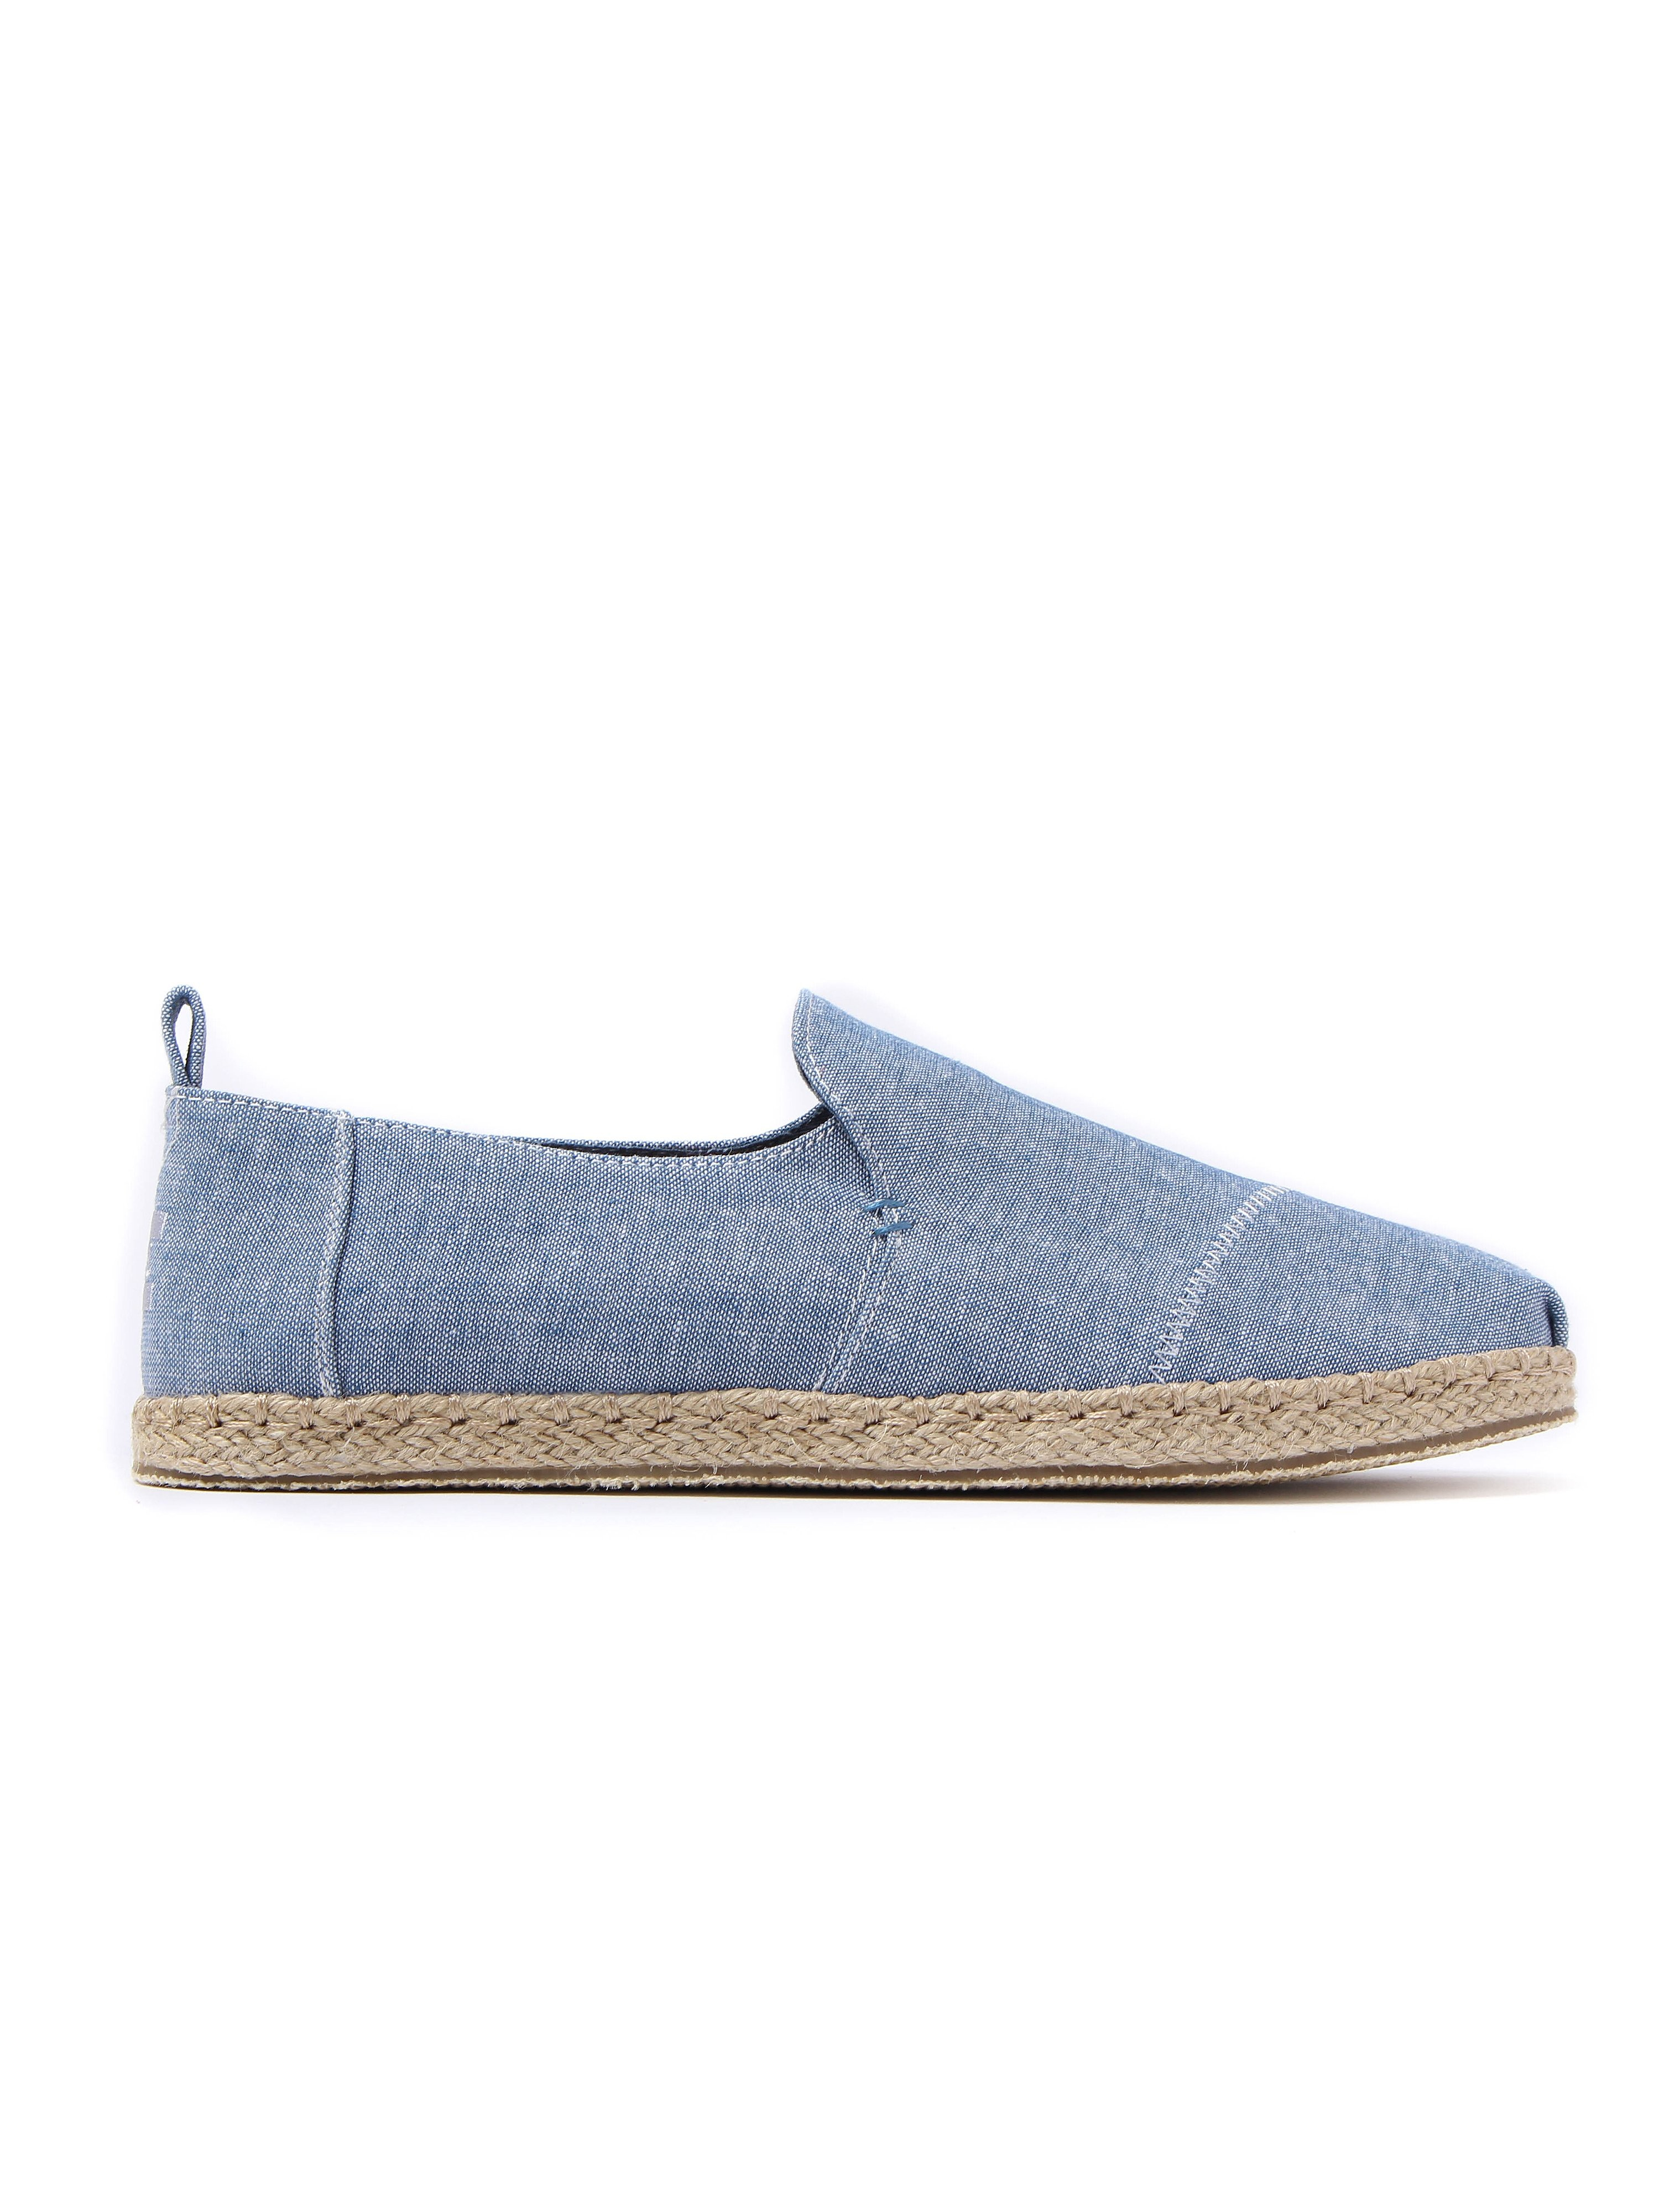 Toms Men's Deconstructed Alpargata Slub Chambray Rope Sole Espadrilles - Cornflower Blue